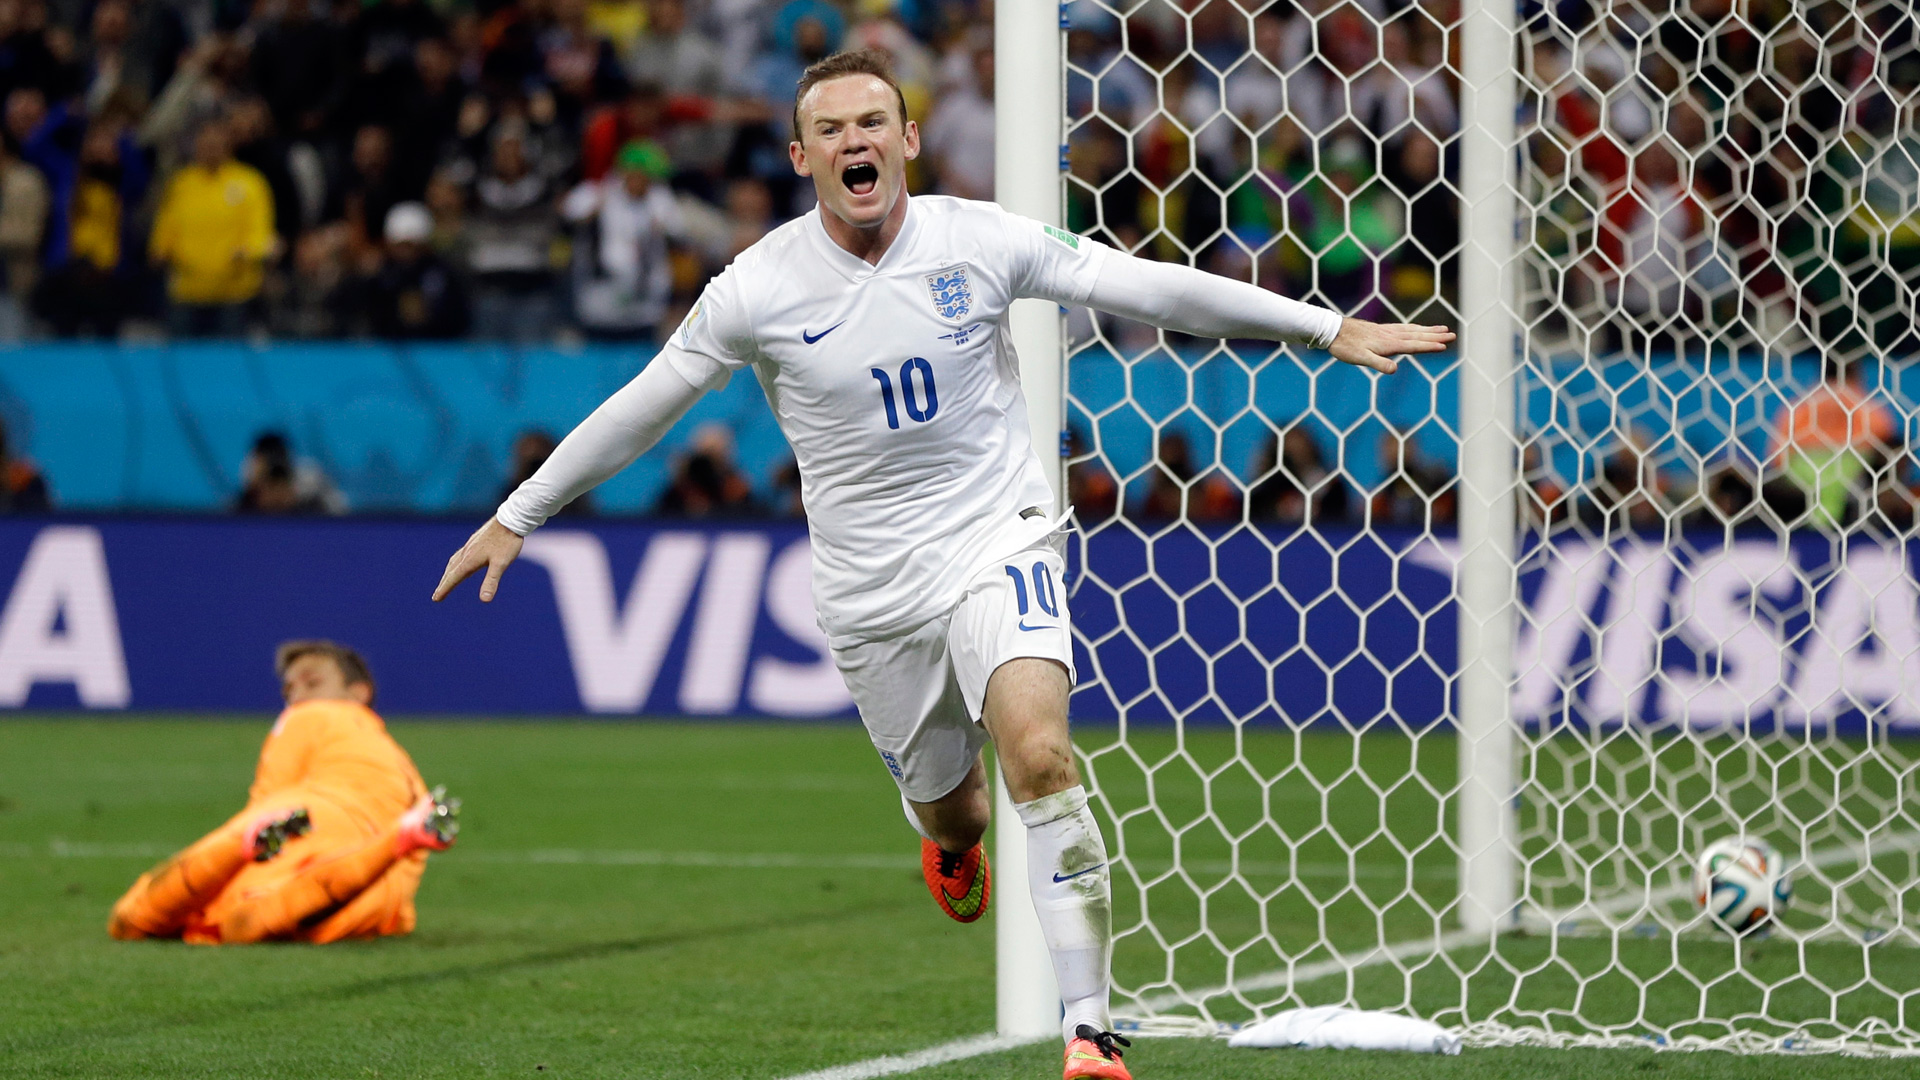 England vs. Slovenia betting preview and pick – Roy Hodgson's side should cruise to victory